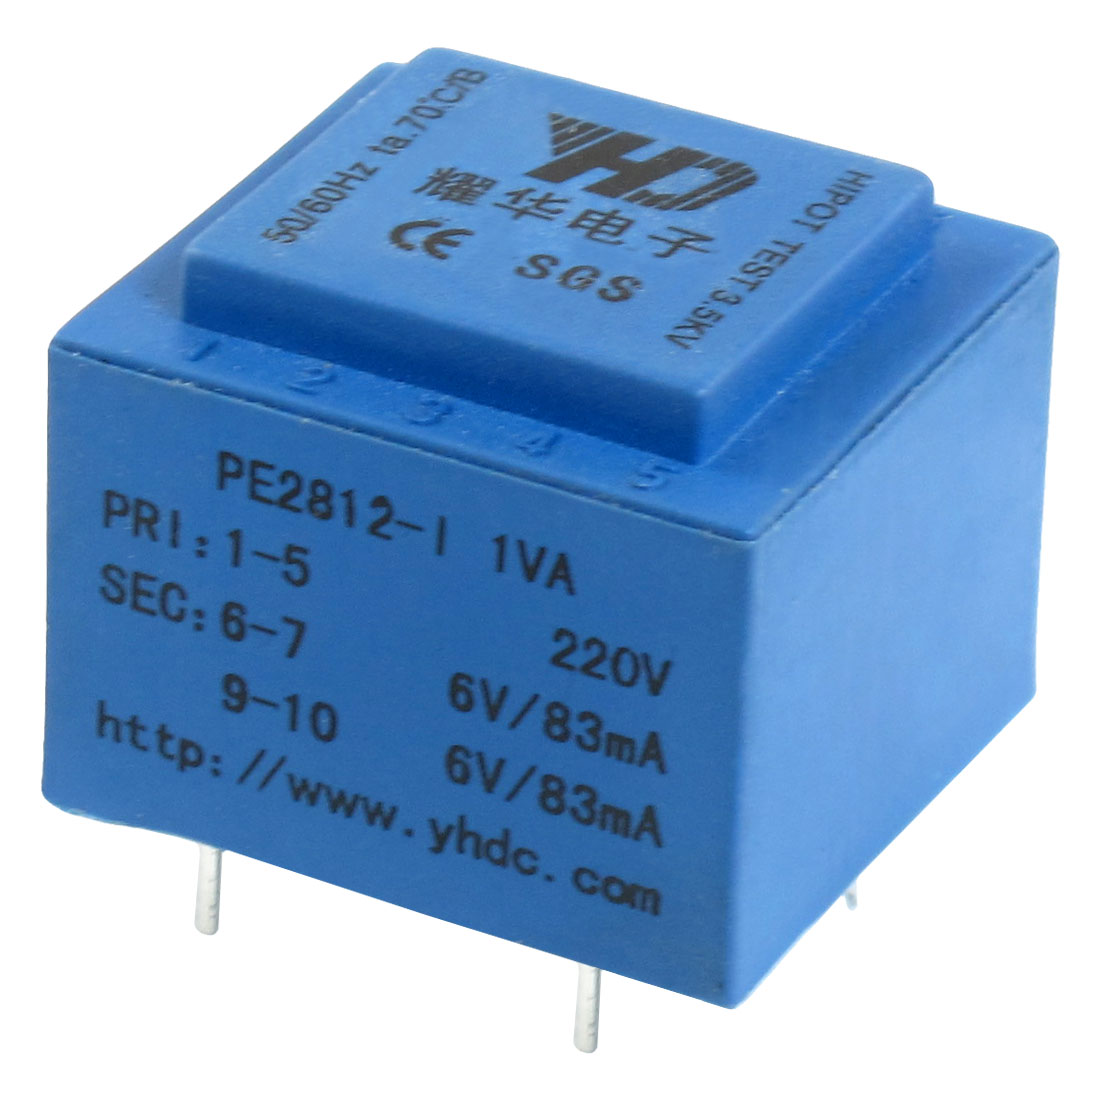 PE2812-1 Epoxy Resin Sealed 6 Pin Encapsulated Transformer 220V